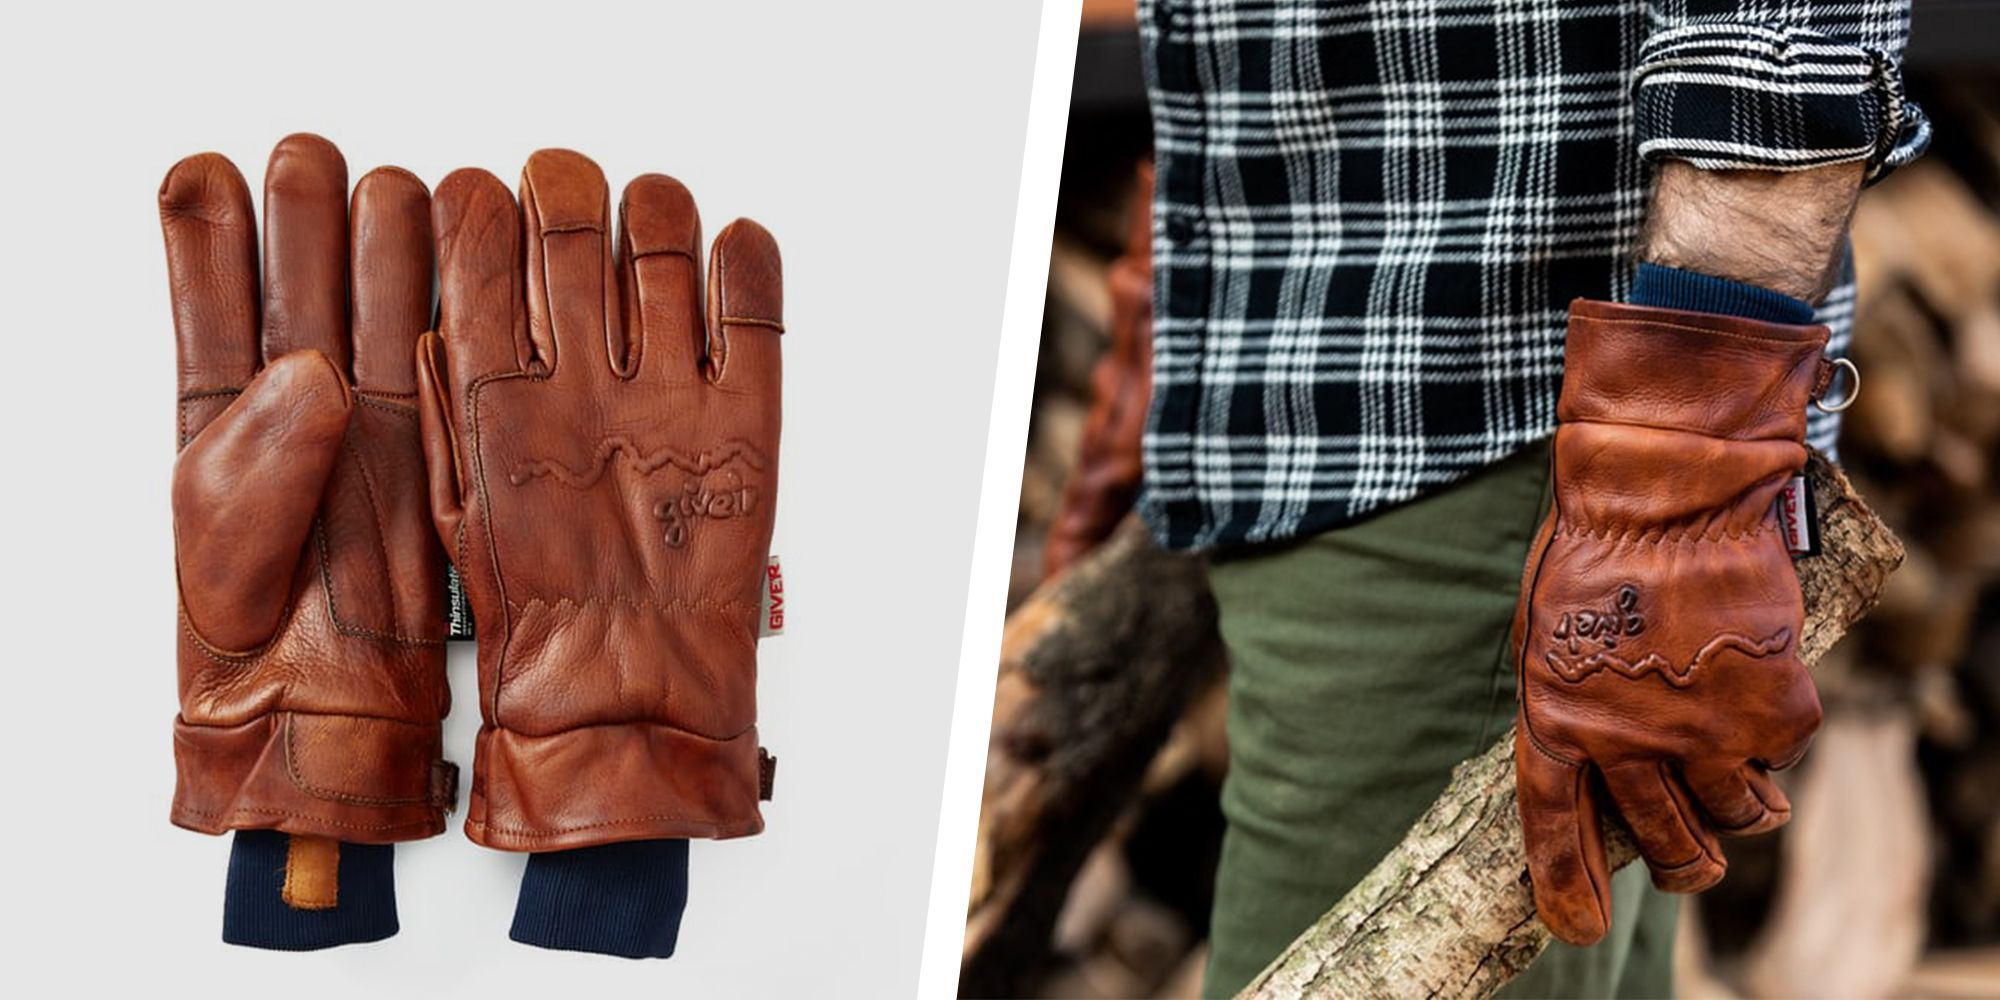 The 12 Best Winter Gloves for Men to Keep Their Hands Warm This Winter